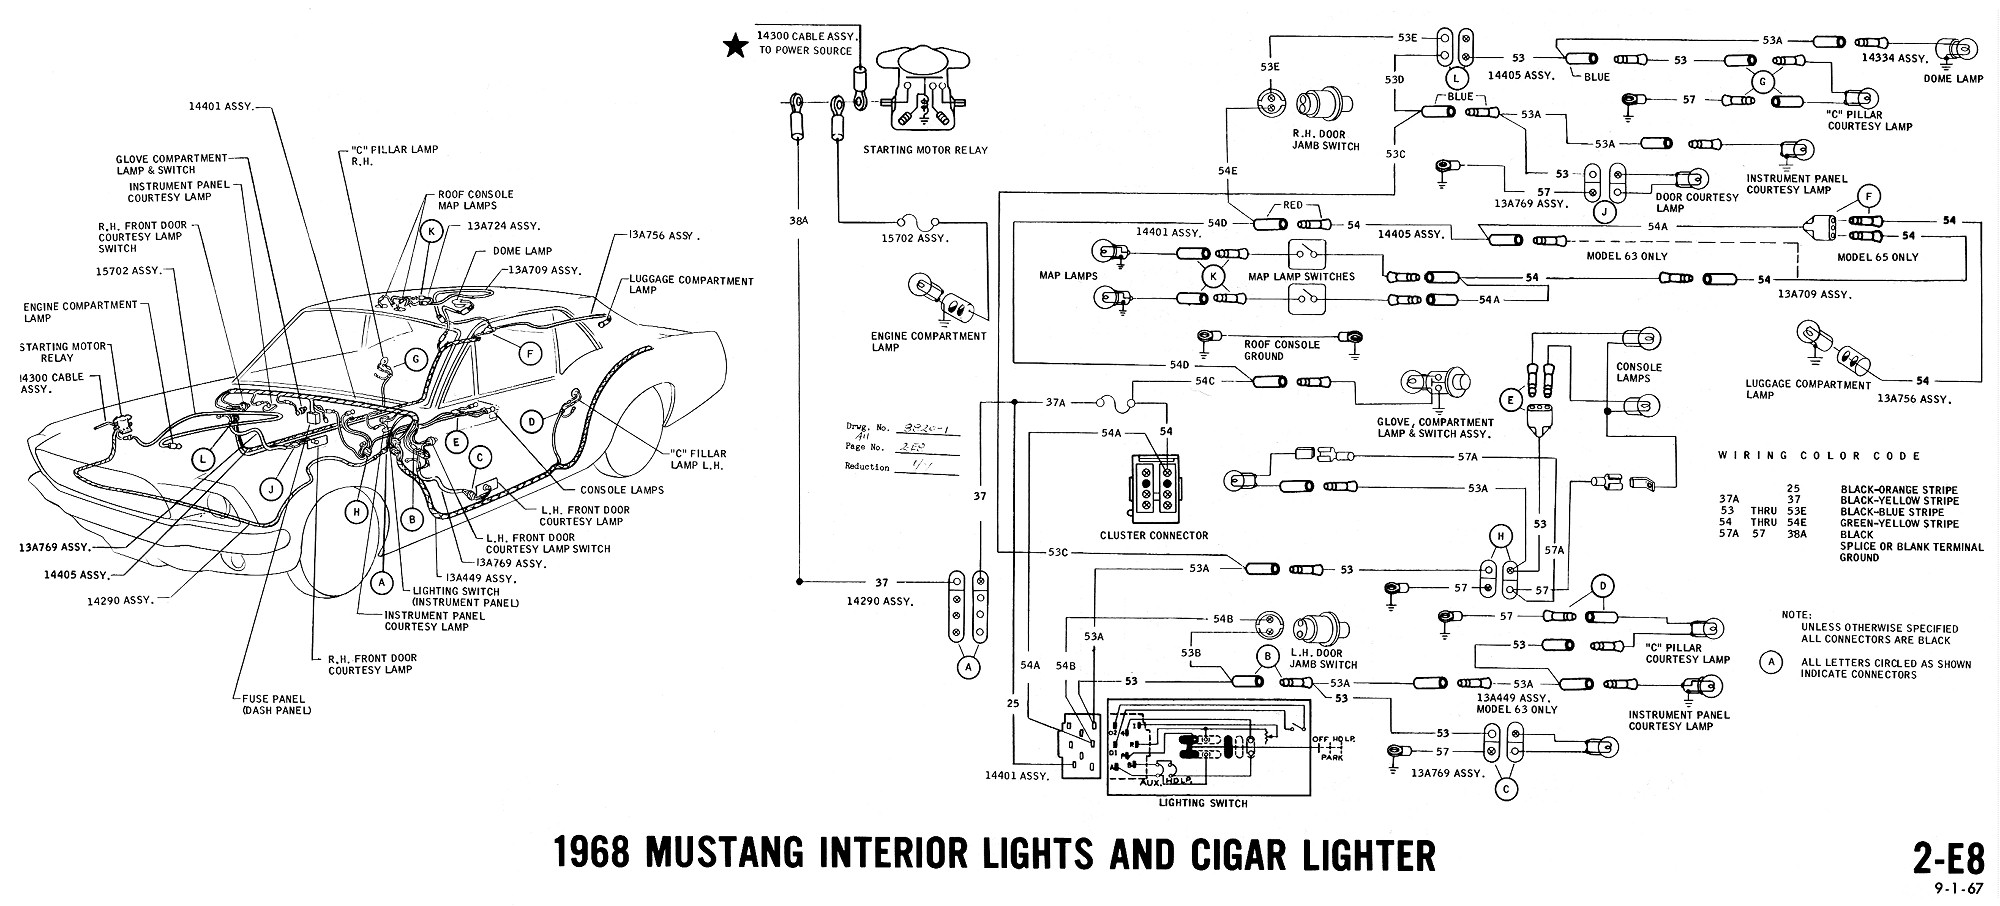 1968 Mustang Fuse Panel Diagram Trusted Schematics 2007 Box Electrical Wiring Diagrams